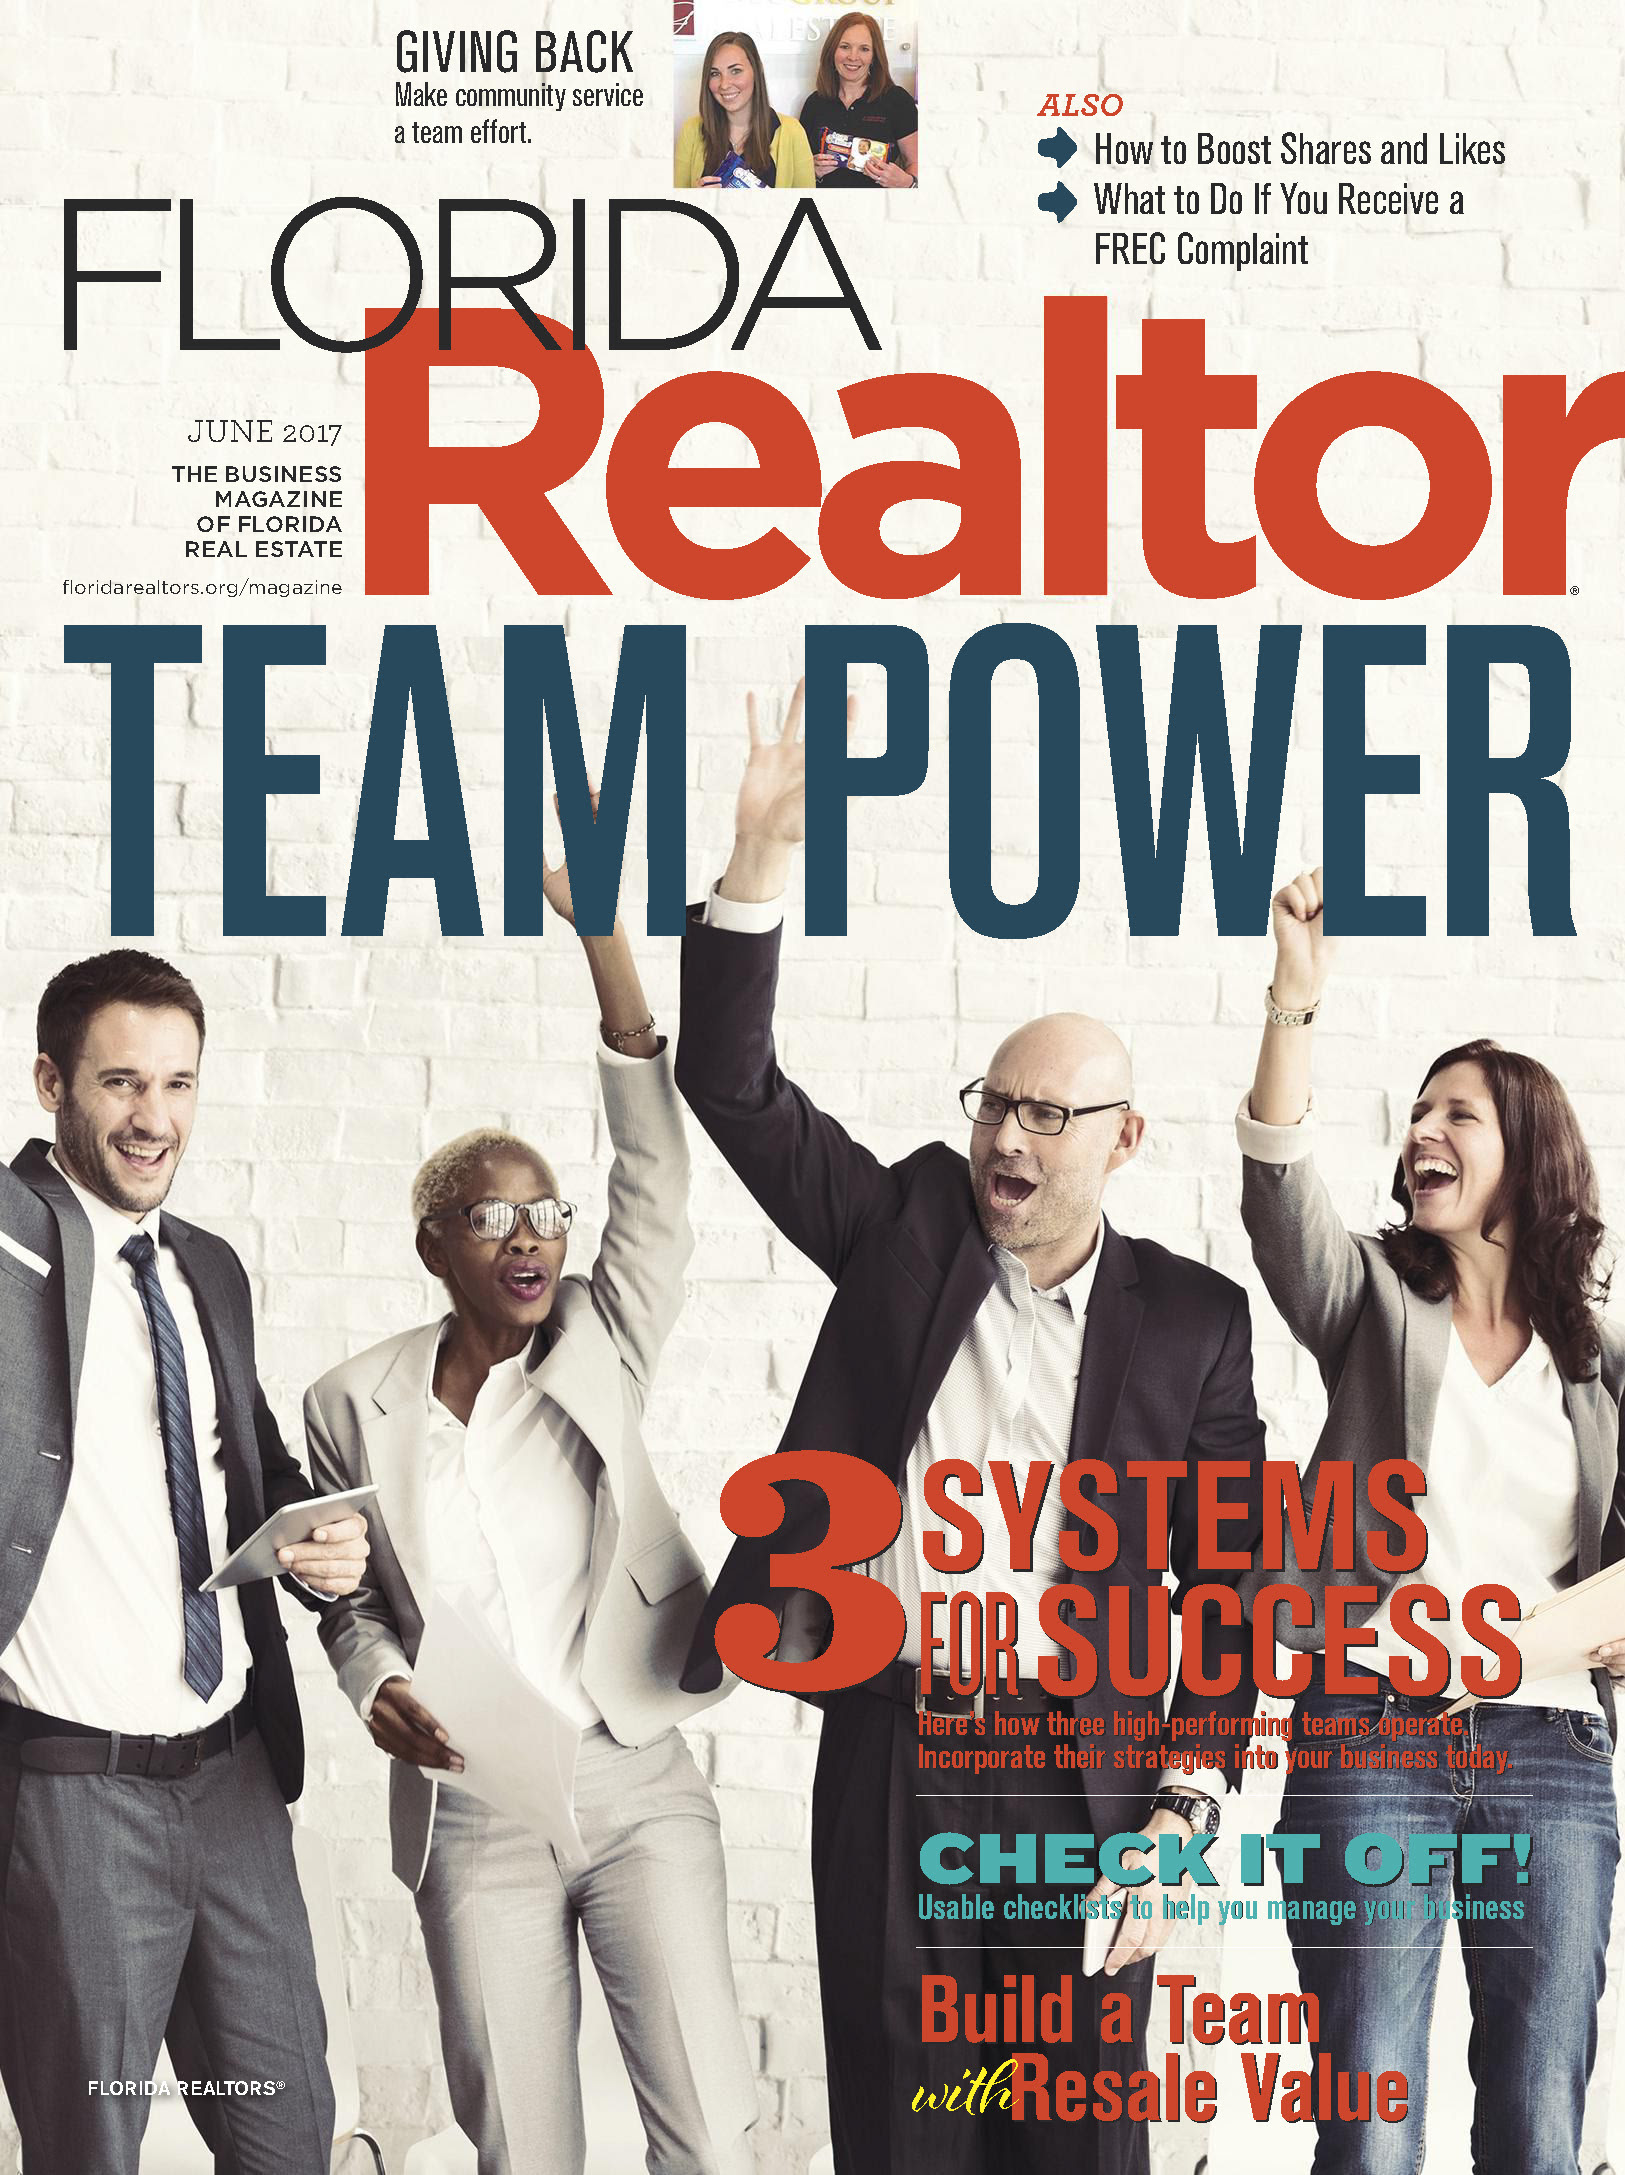 Treu Group Real Estate featured on cover of Florida Realtor Magazine